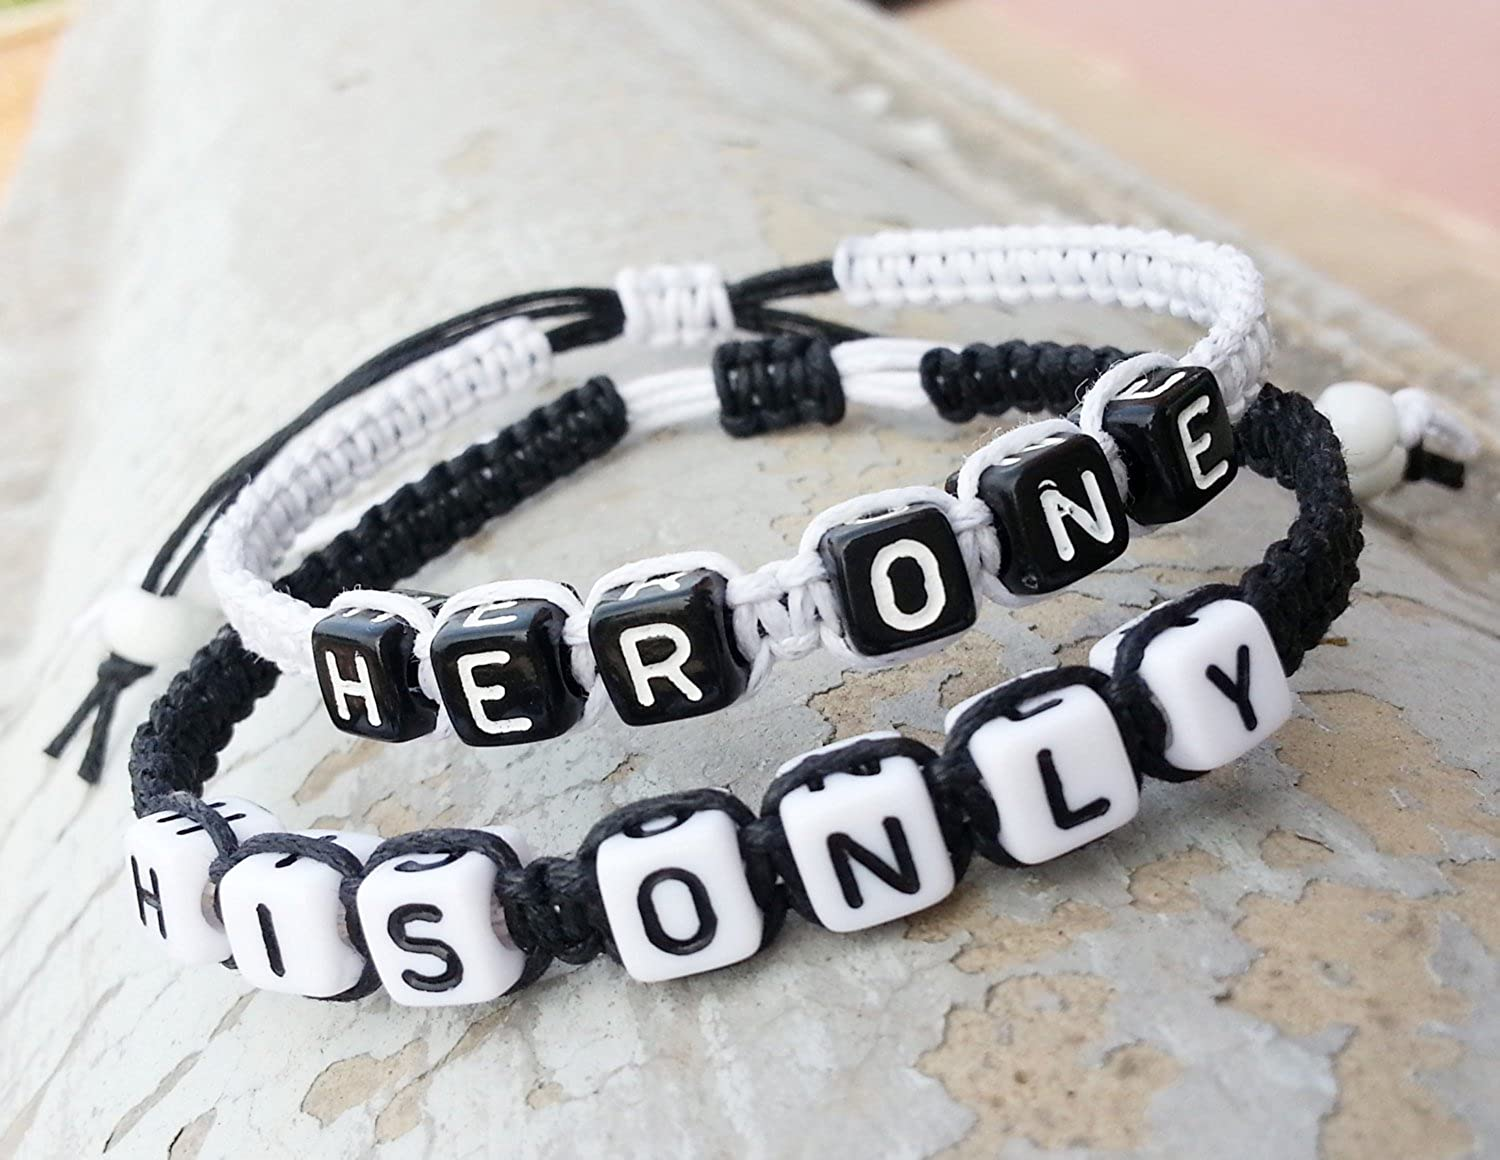 Couple Bracelet His Only Her One Bracelet Boyfriend and Girlfriend Jewelry Hand Weaving White and Black Bracelet Anniversary Gift